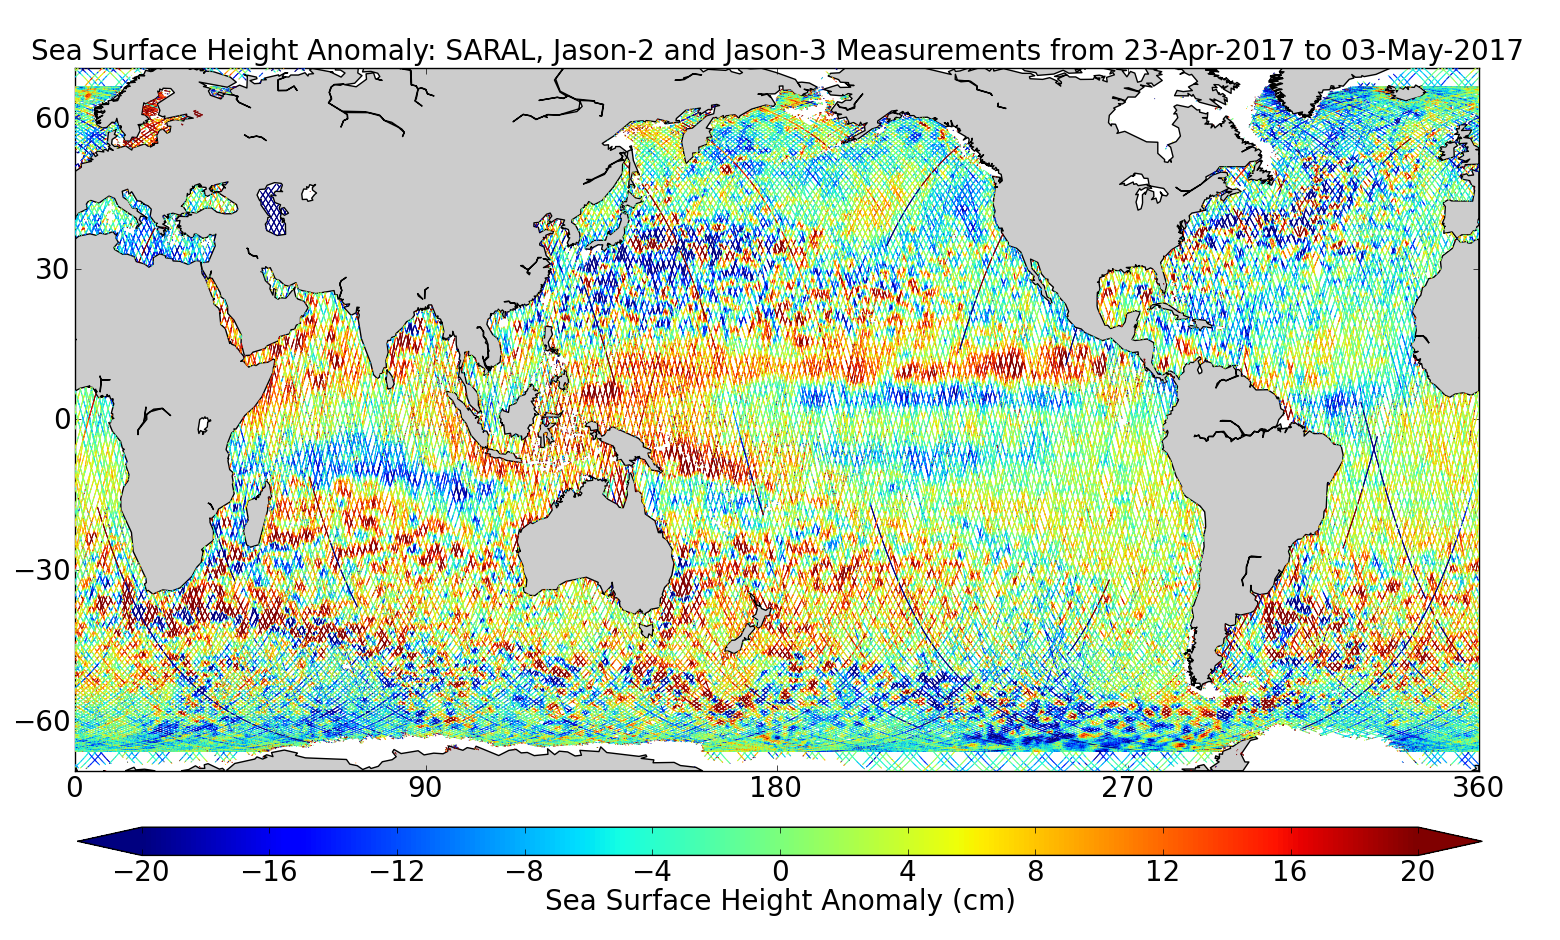 Sea Surface Height Anomaly: SARAL, Jason-2 and Jason-3 Measurements from 23-Apr-2017 to 03-May-2017